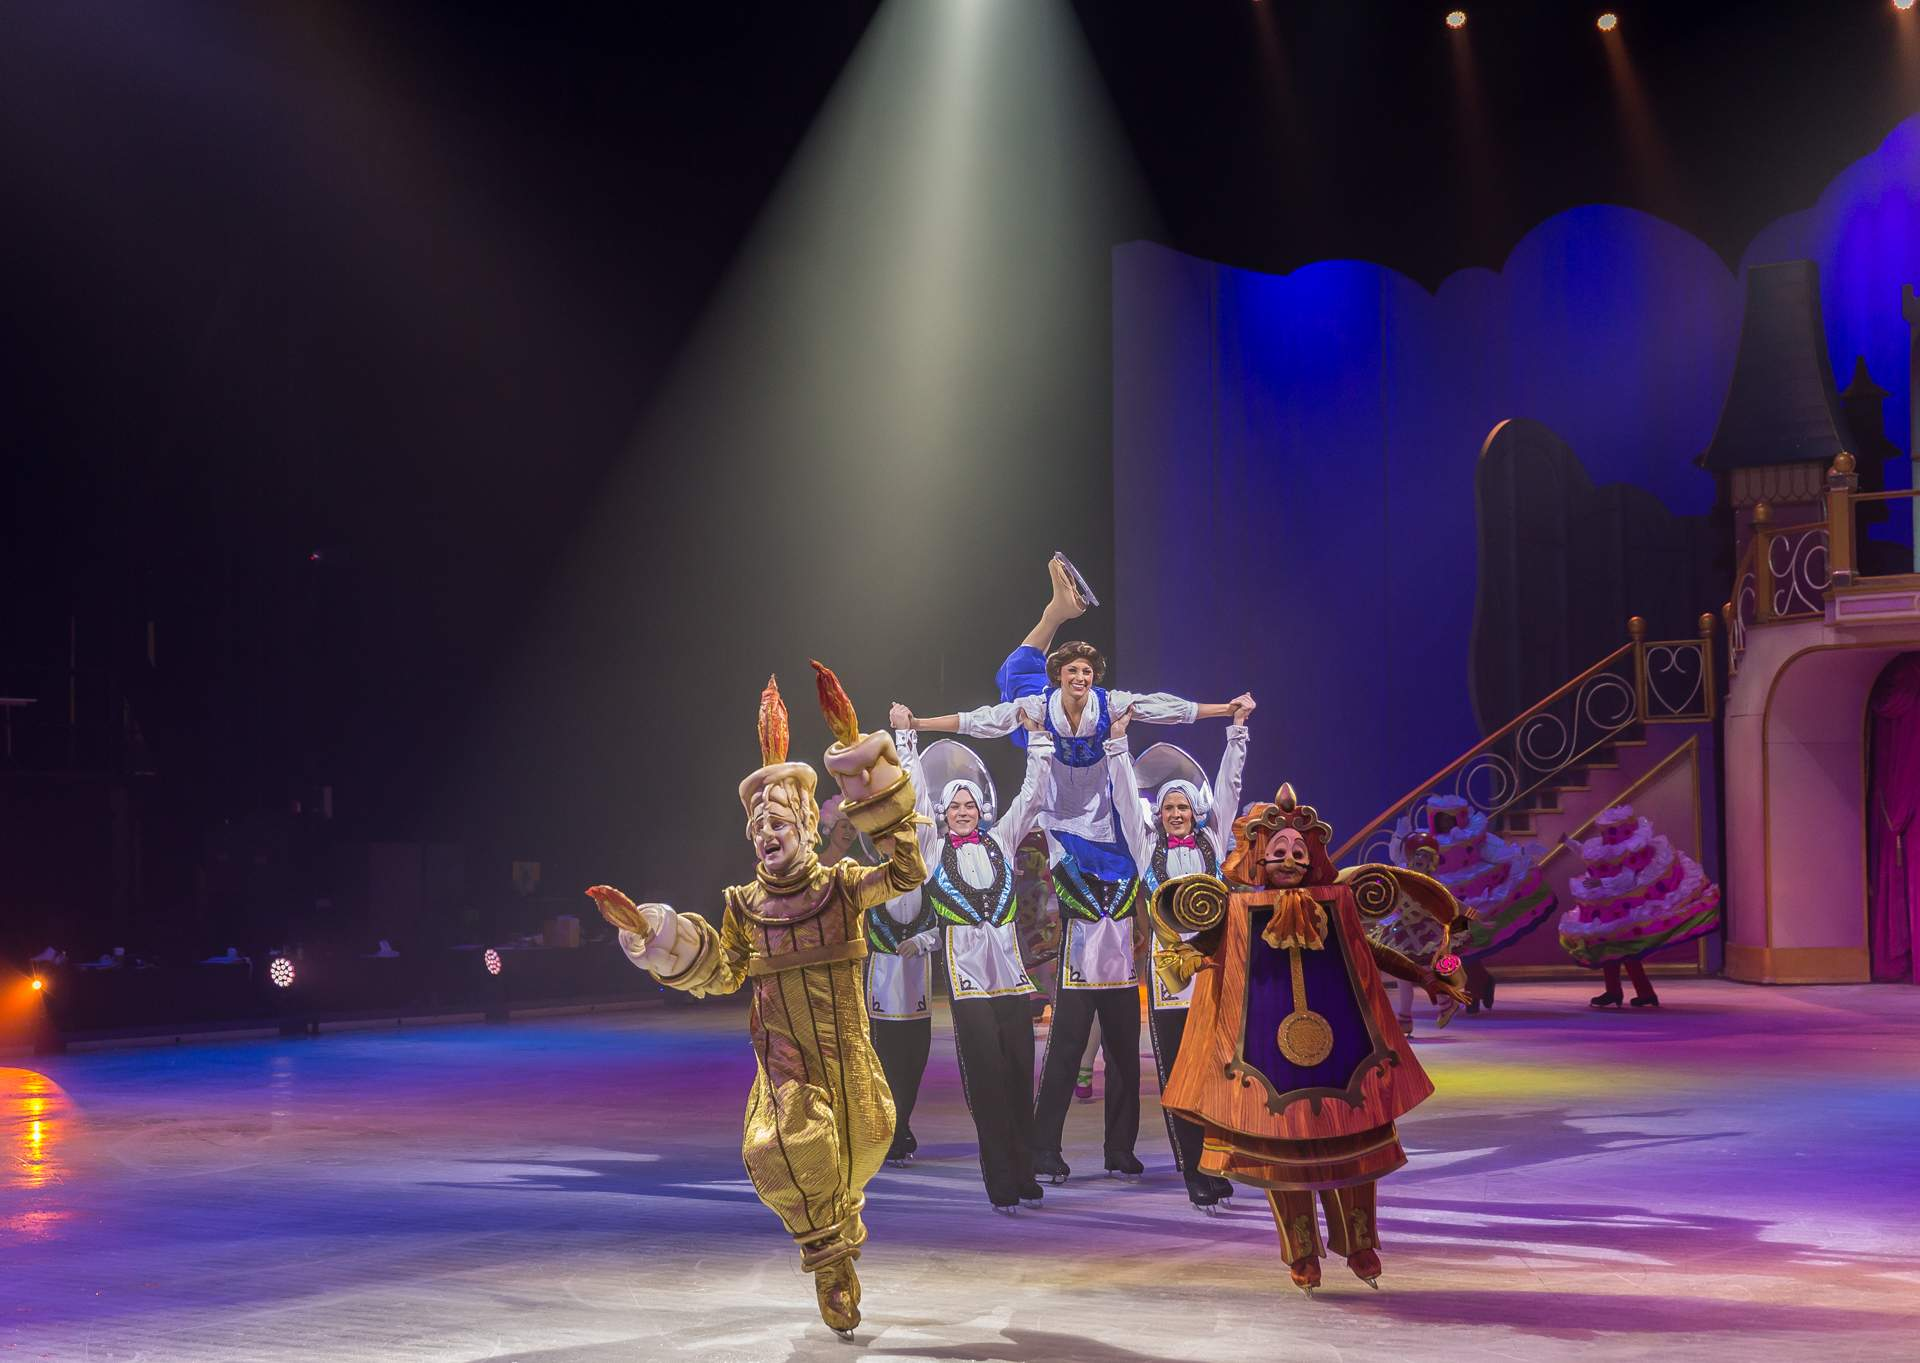 Beauty and the beast character dancing on ice